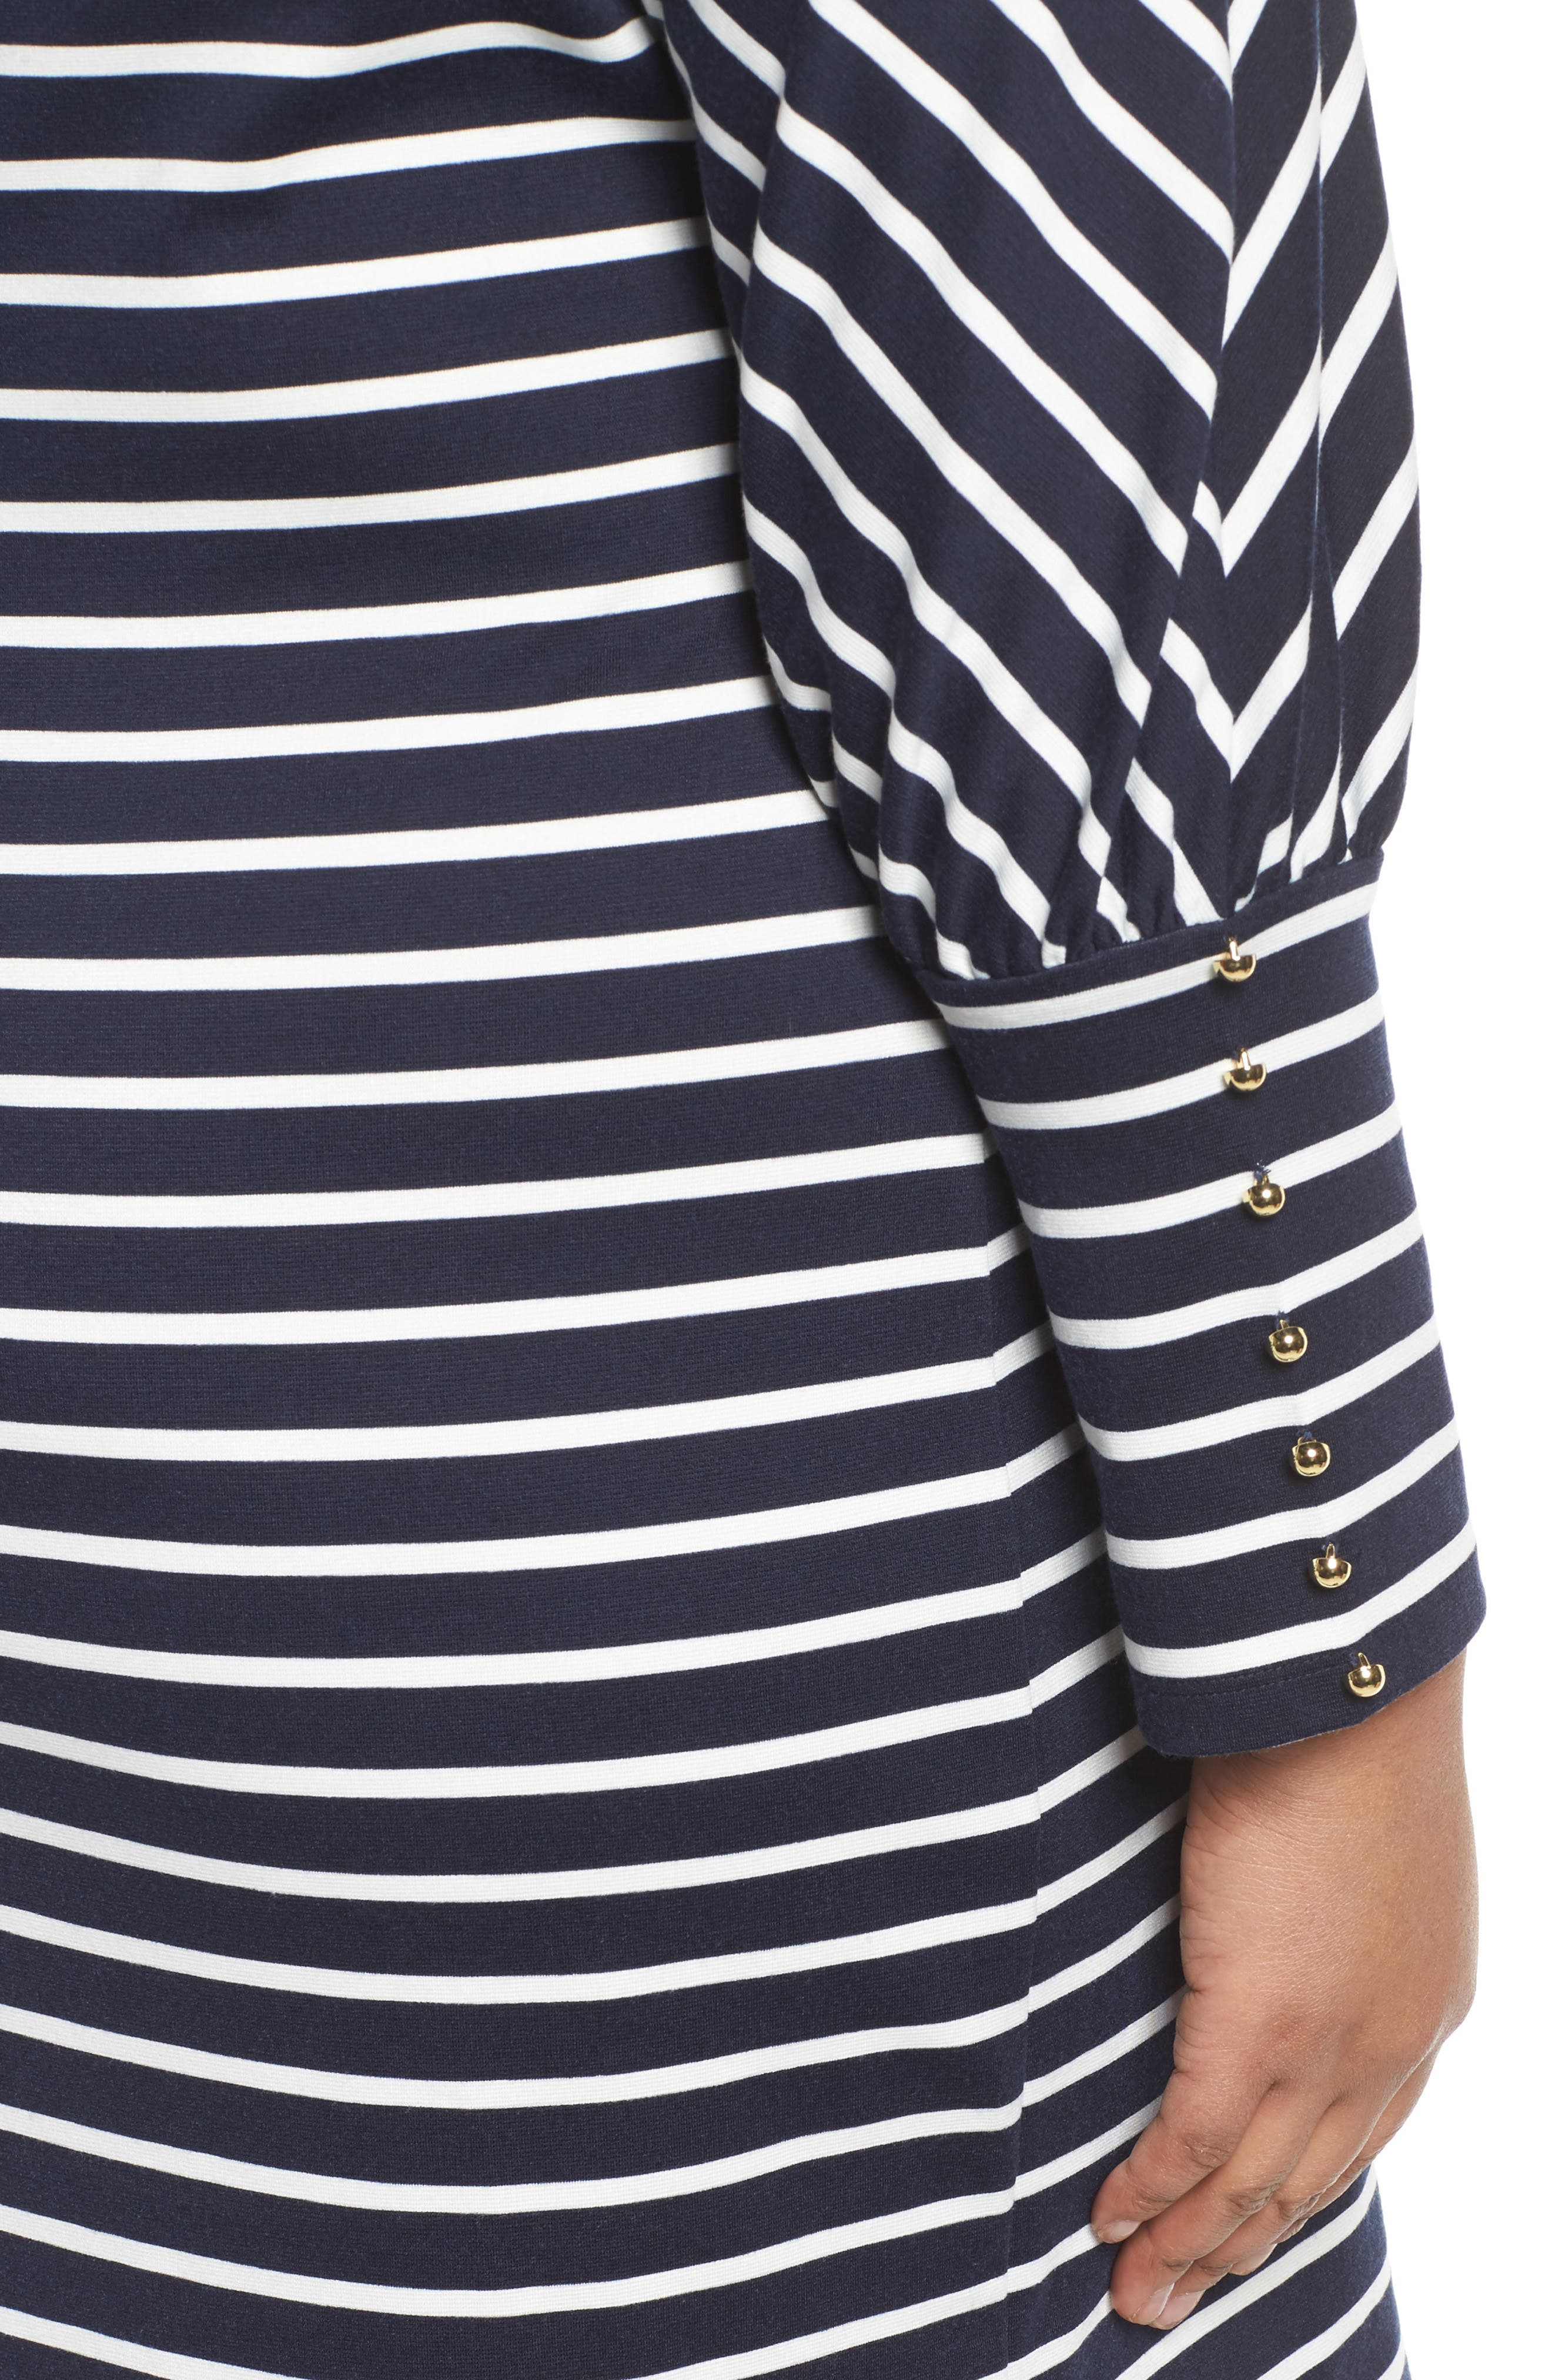 Stripe Ponte Shift Dress,                             Alternate thumbnail 4, color,                             407